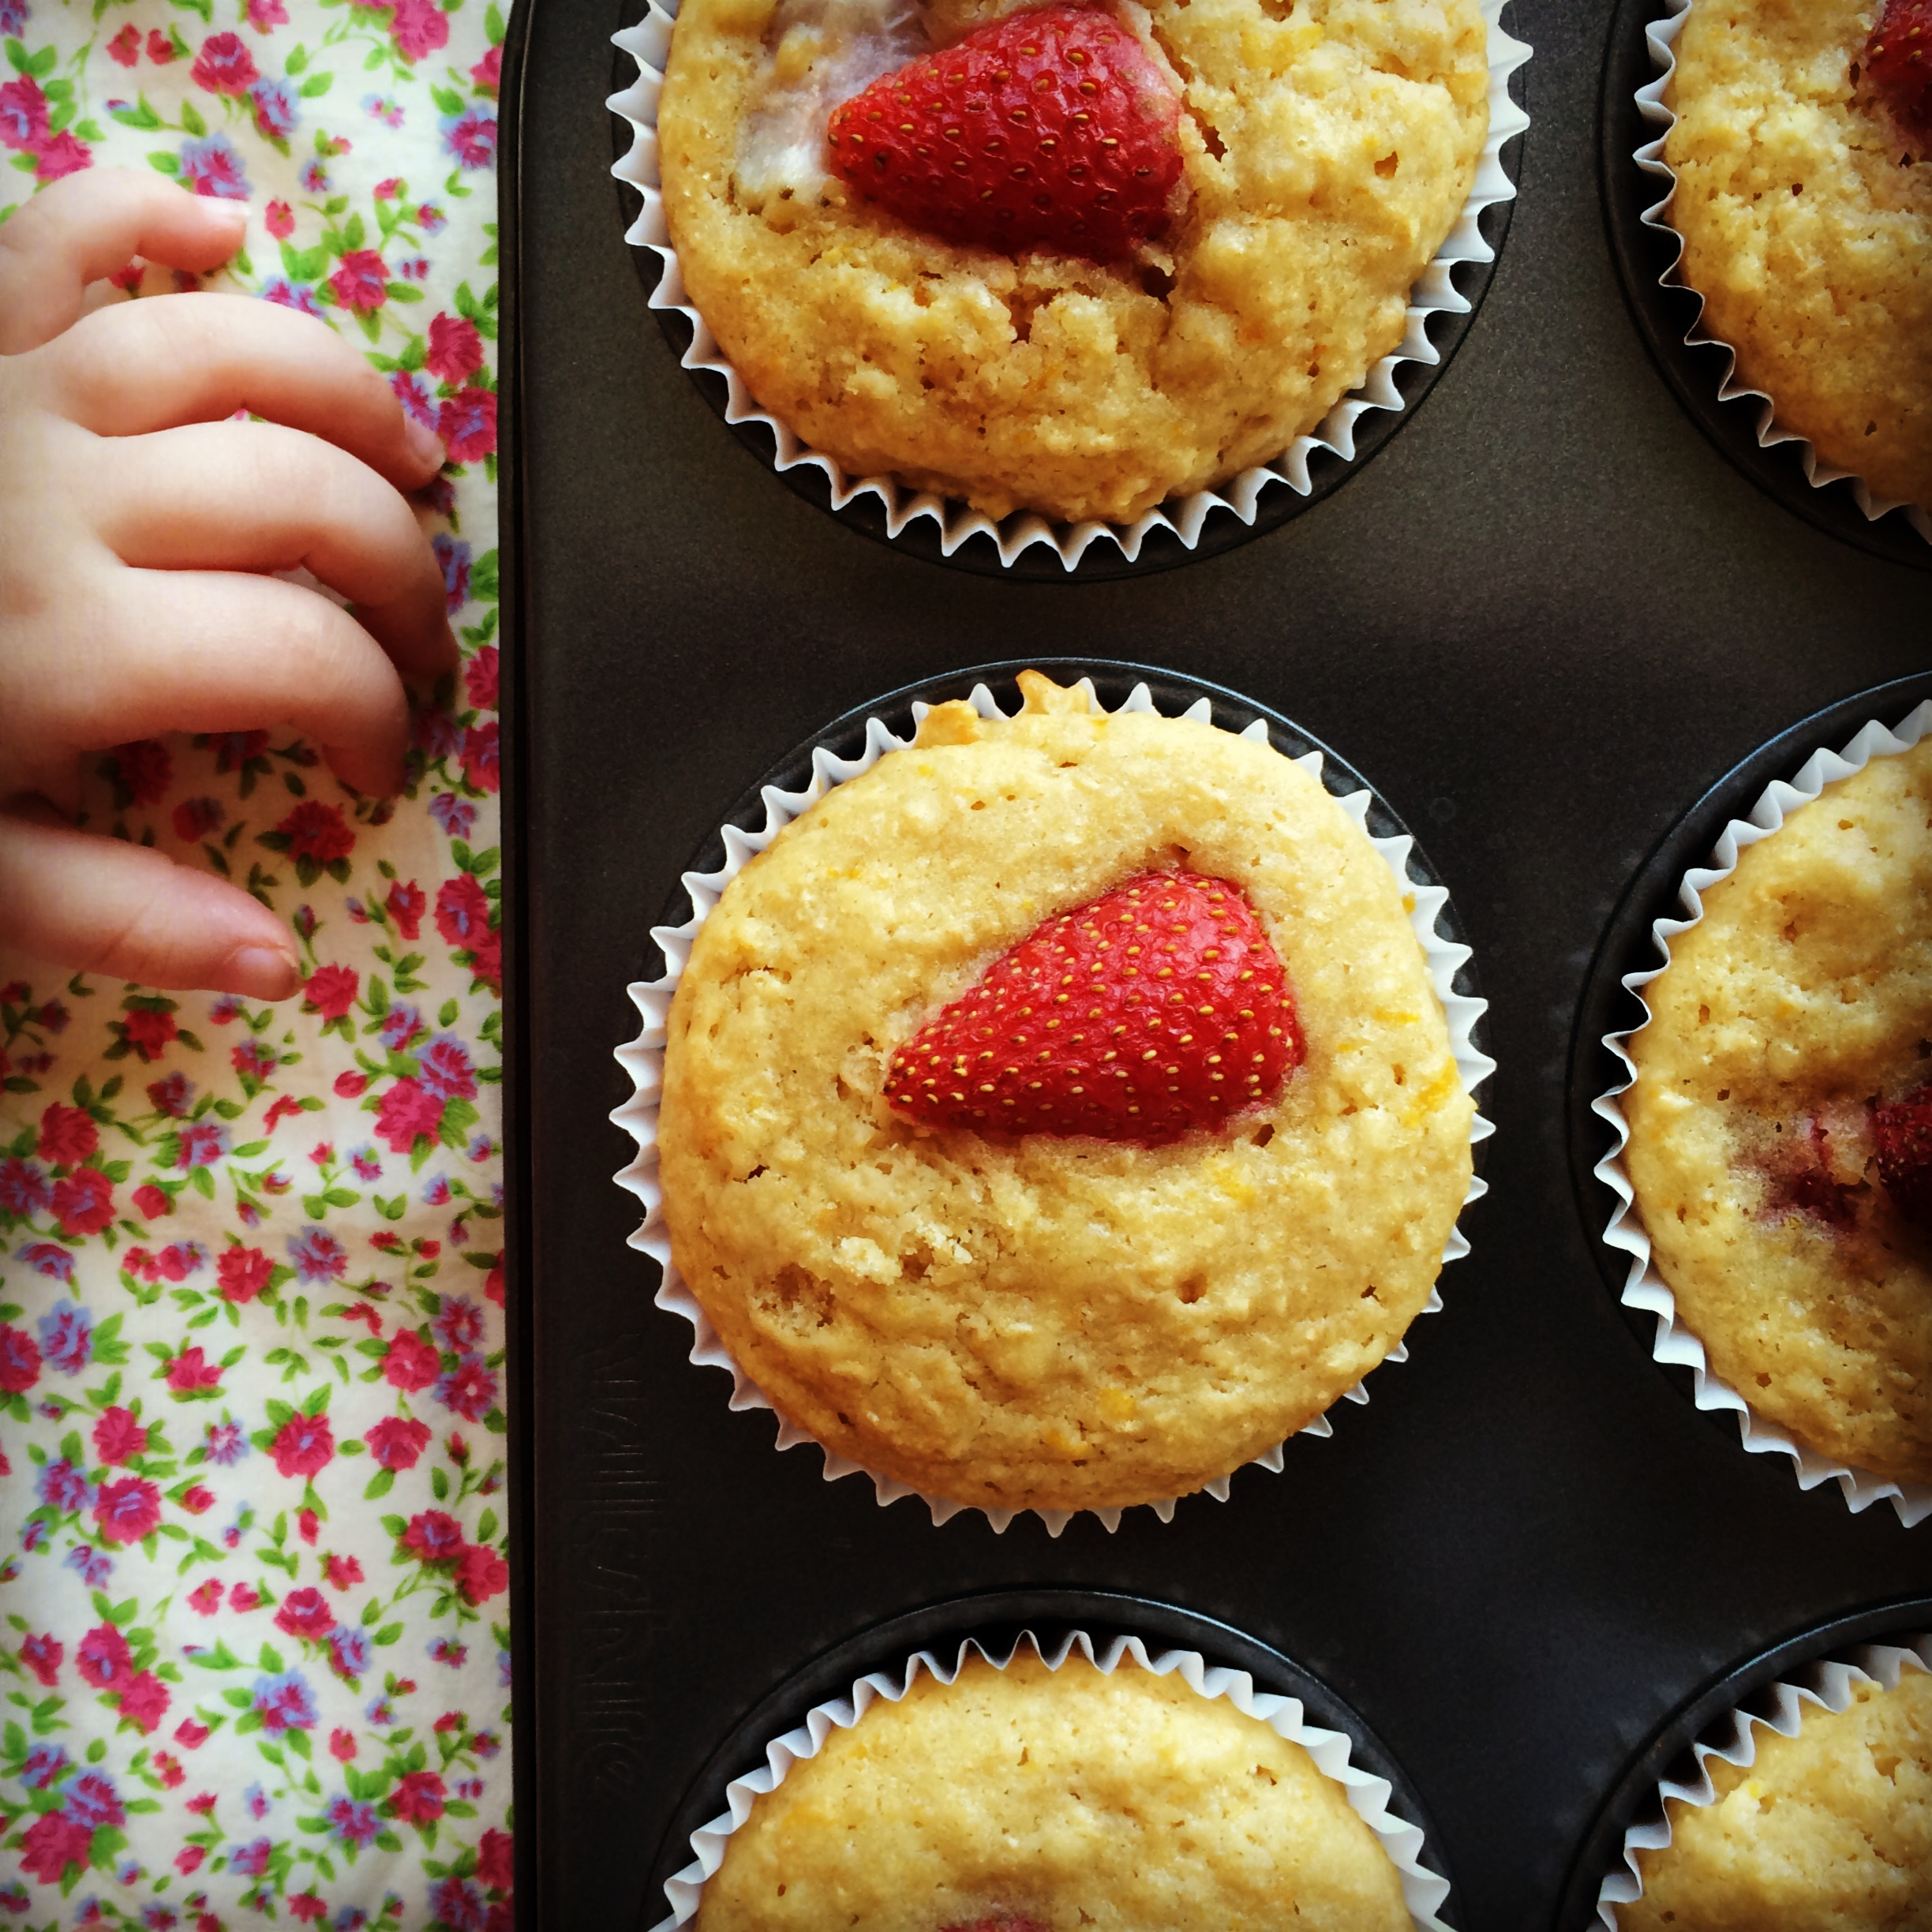 strawberry & mandarin muffins